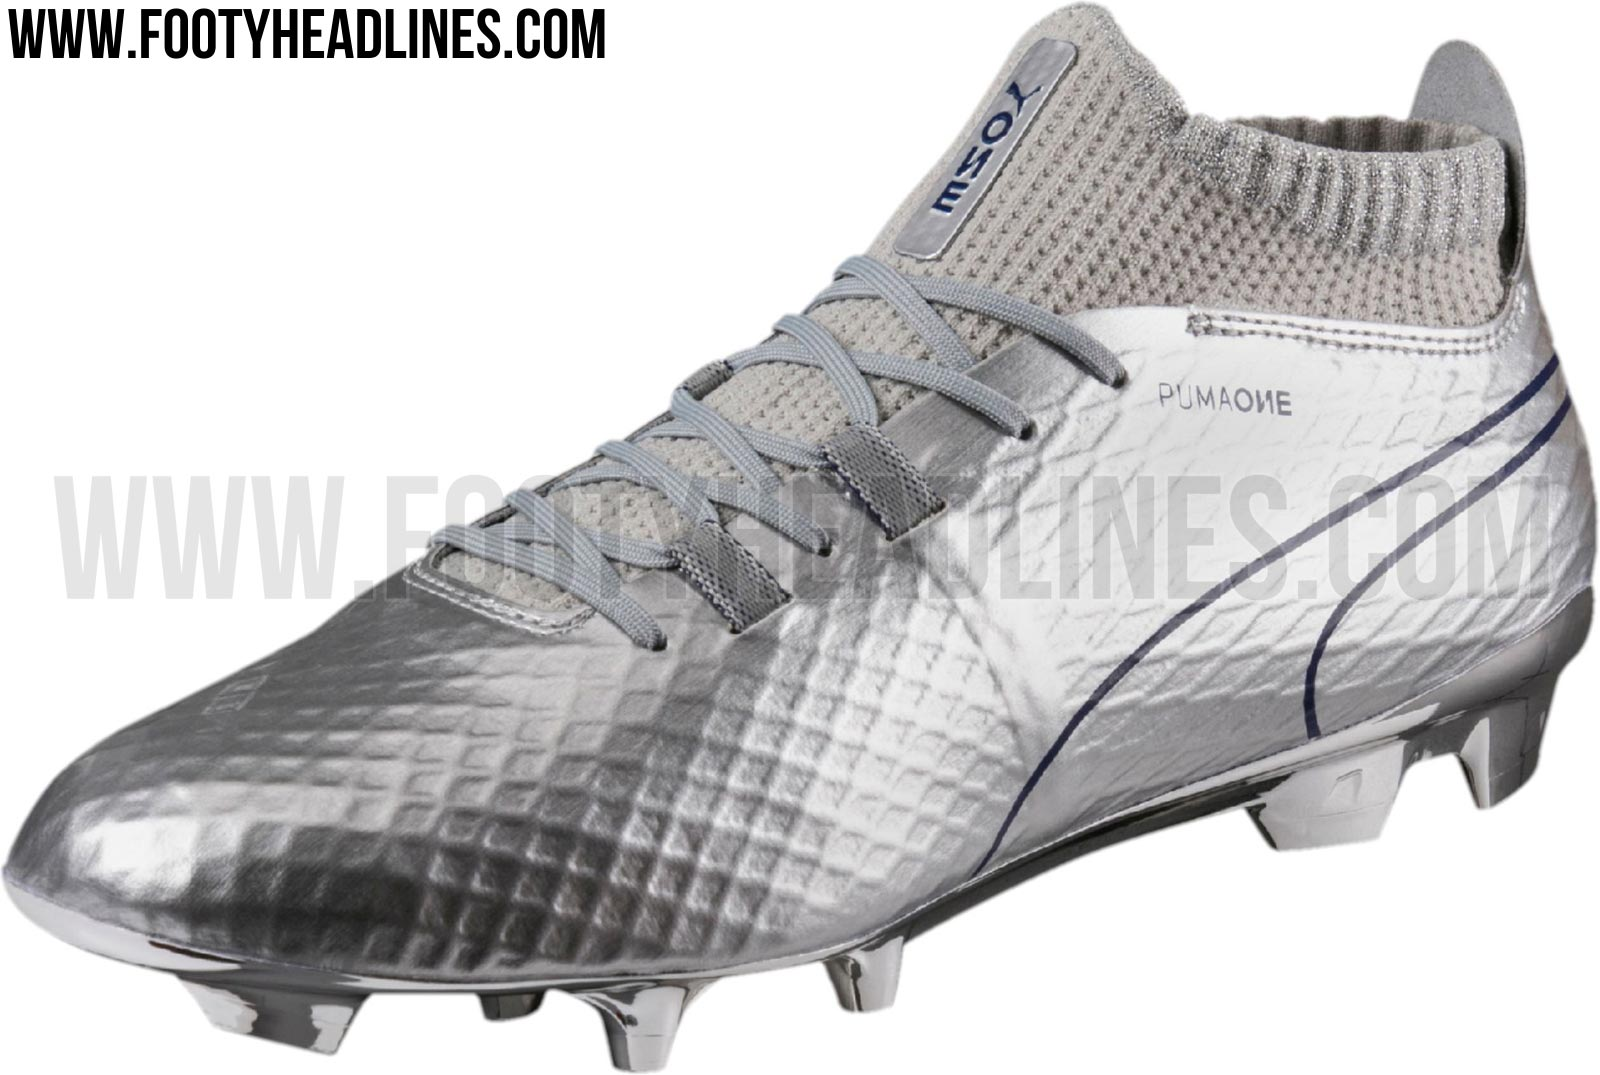 puma one chrome price